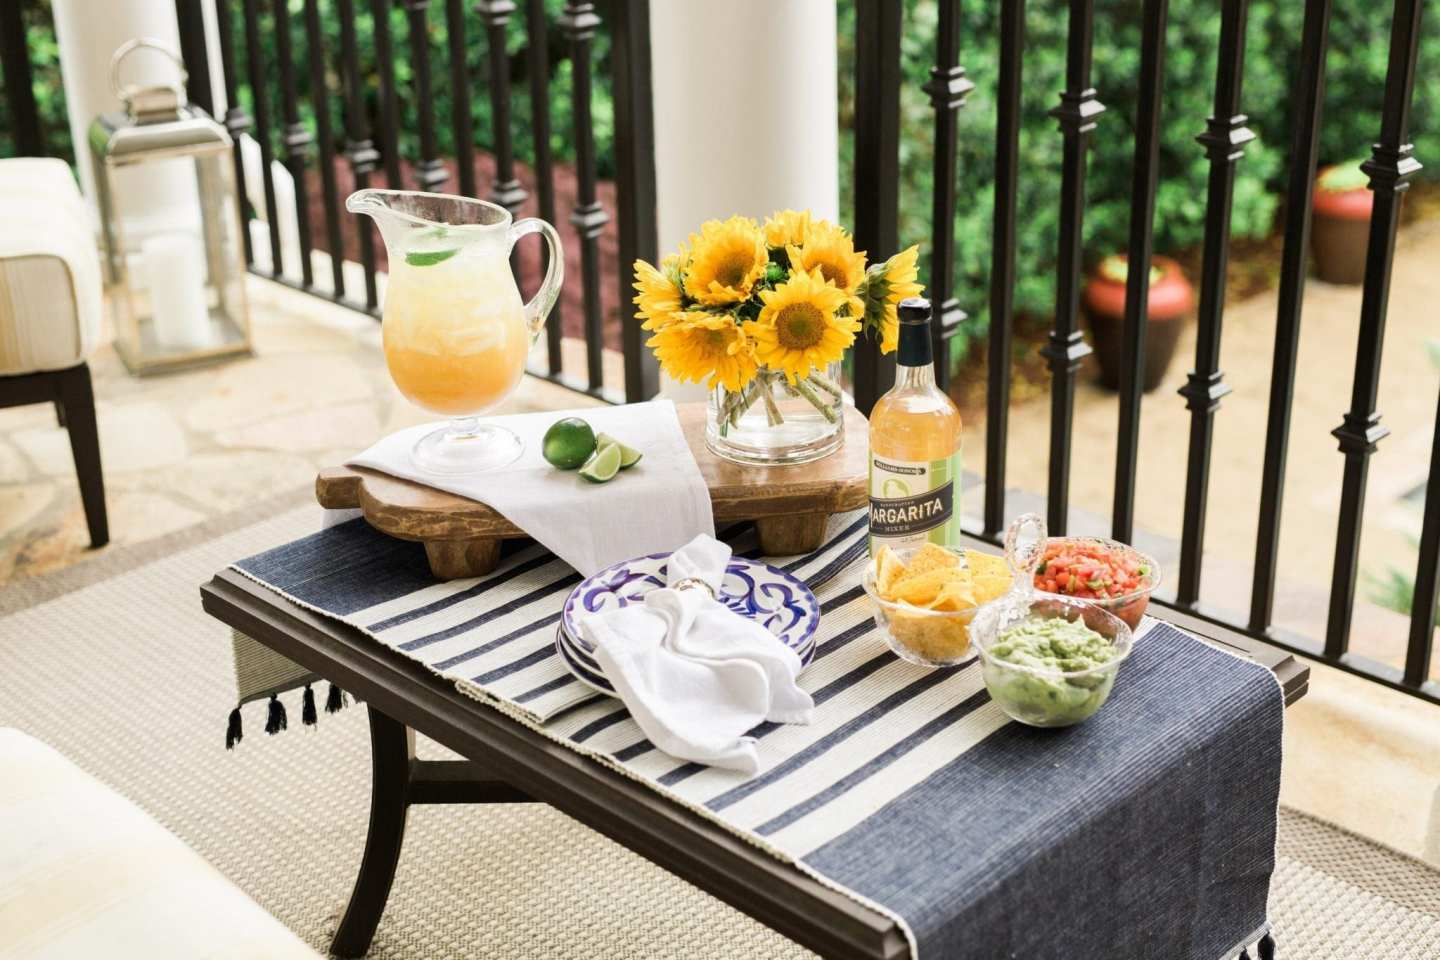 How to decorate for outdoor party. Yellow sunglasses and margarita pitcher on wooden pedestal. Blue and white table runner.